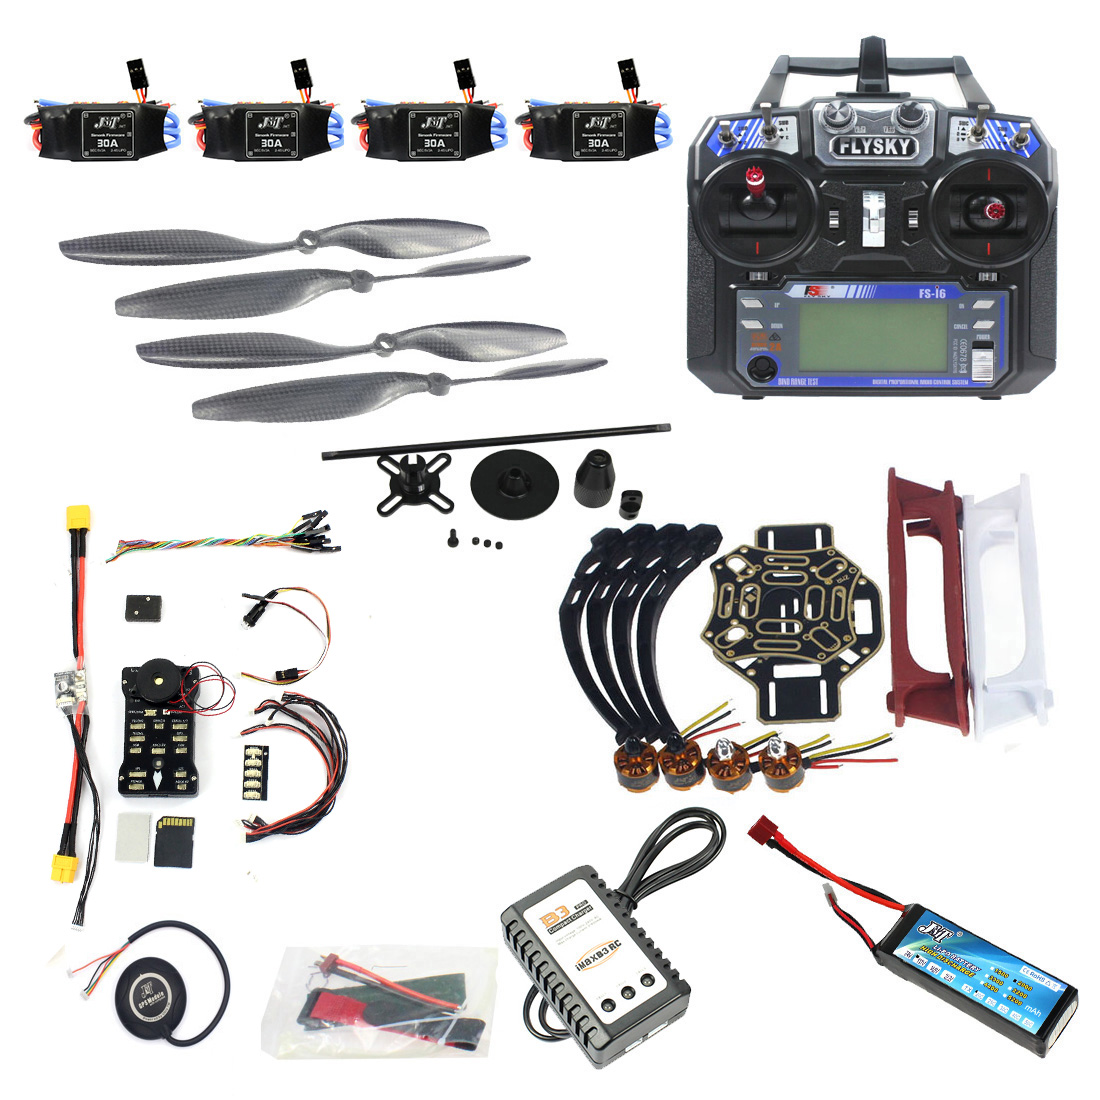 DIY FPV Drone font b Quadcopter b font 4 axle Aircraft Kit 450 Frame PXI PX4